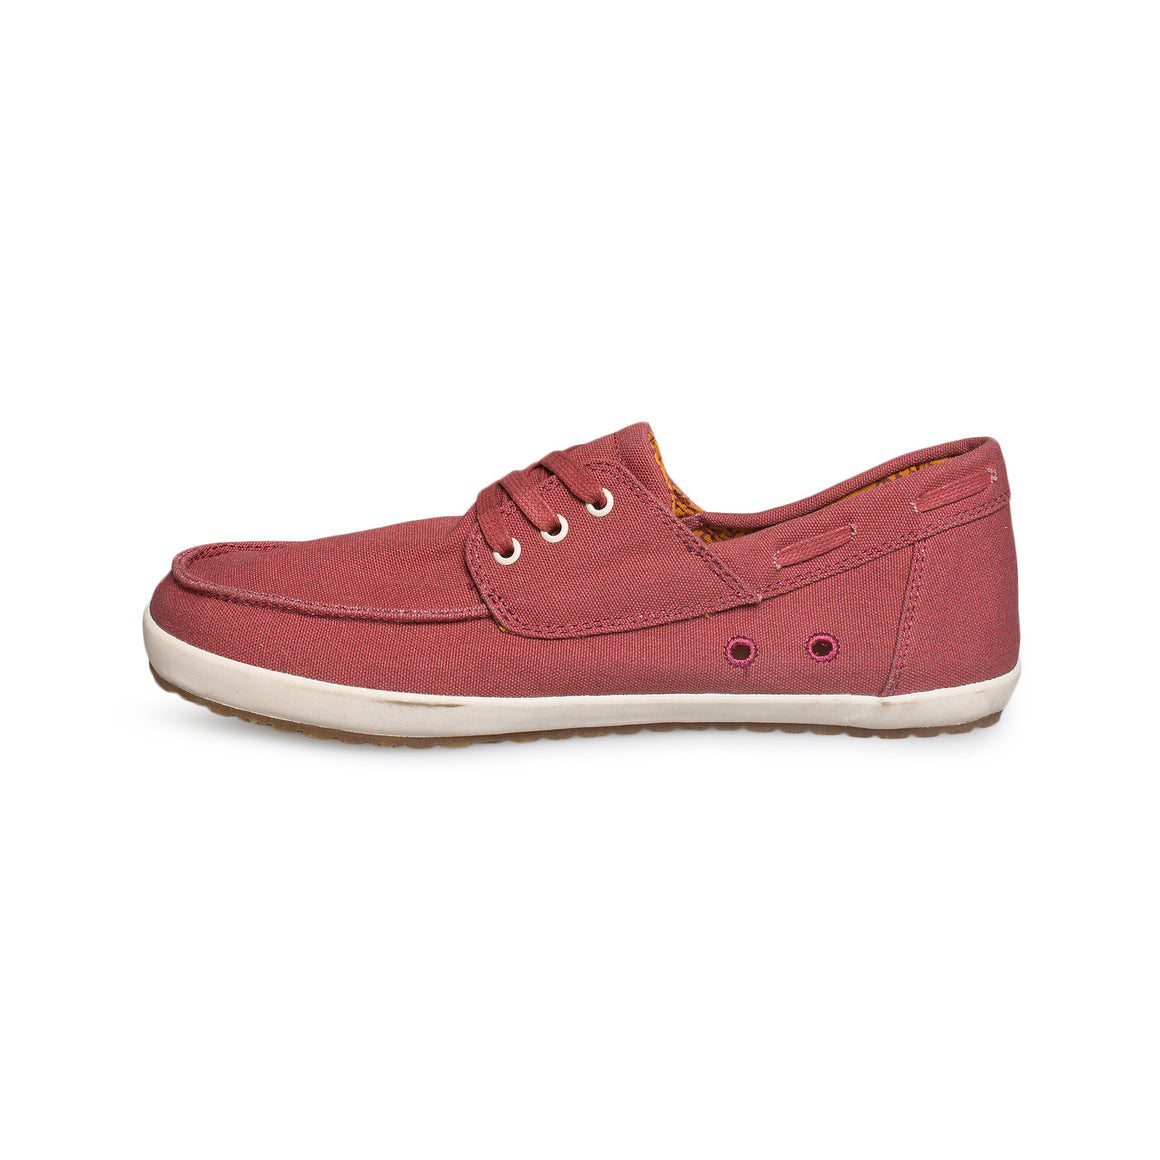 SANUK Casa Barco Dusty Red Shoes - Men's